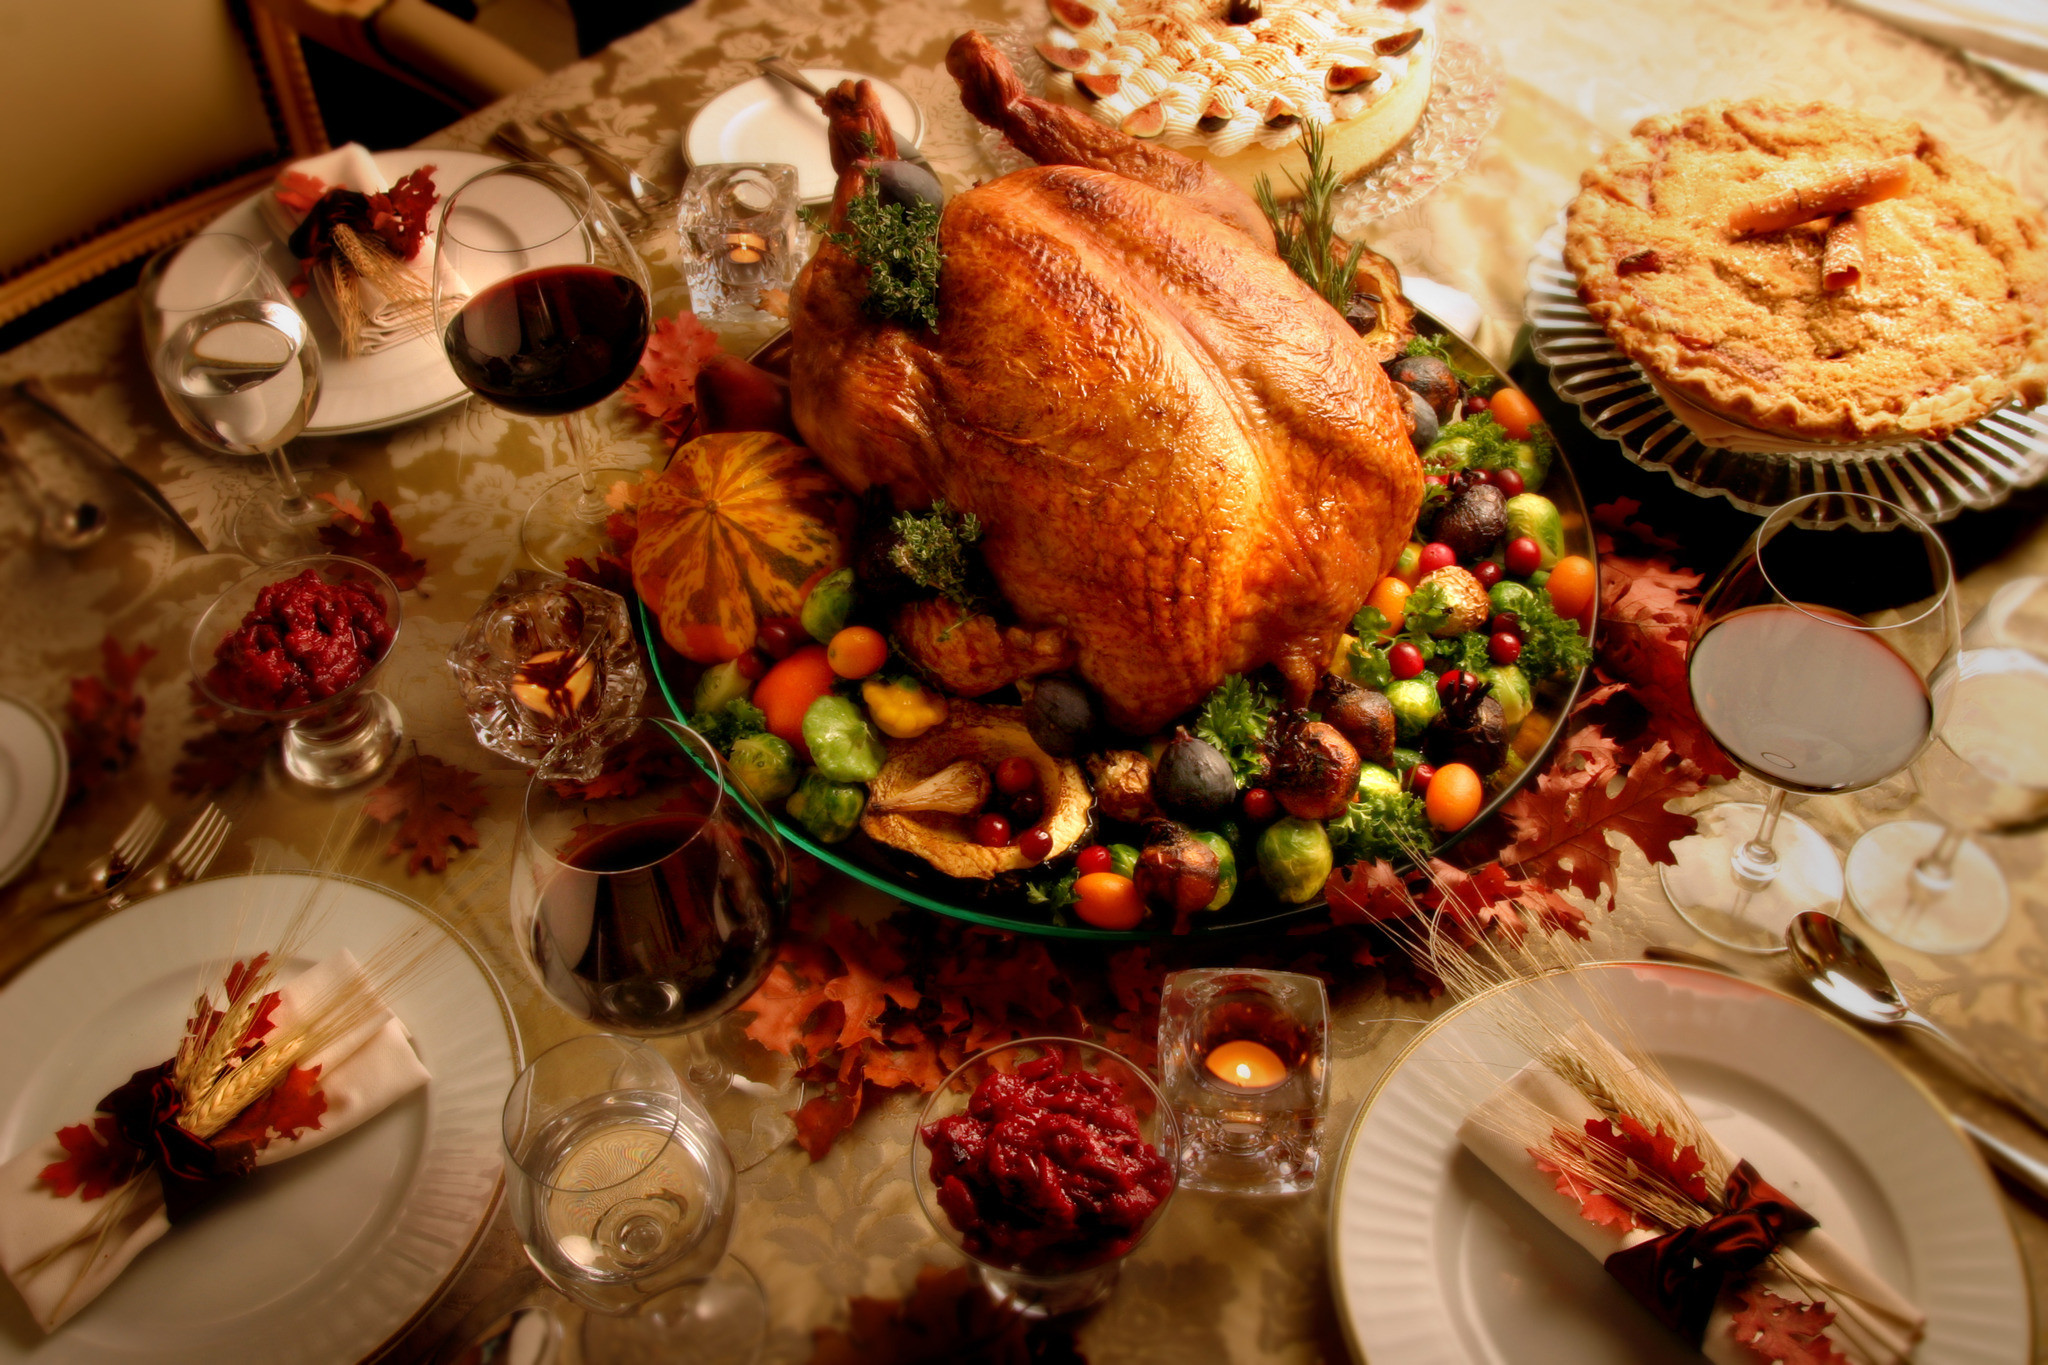 Thanksgiving Dinner Restaurant  Thanksgiving in Los Angeles Including Food Events and More